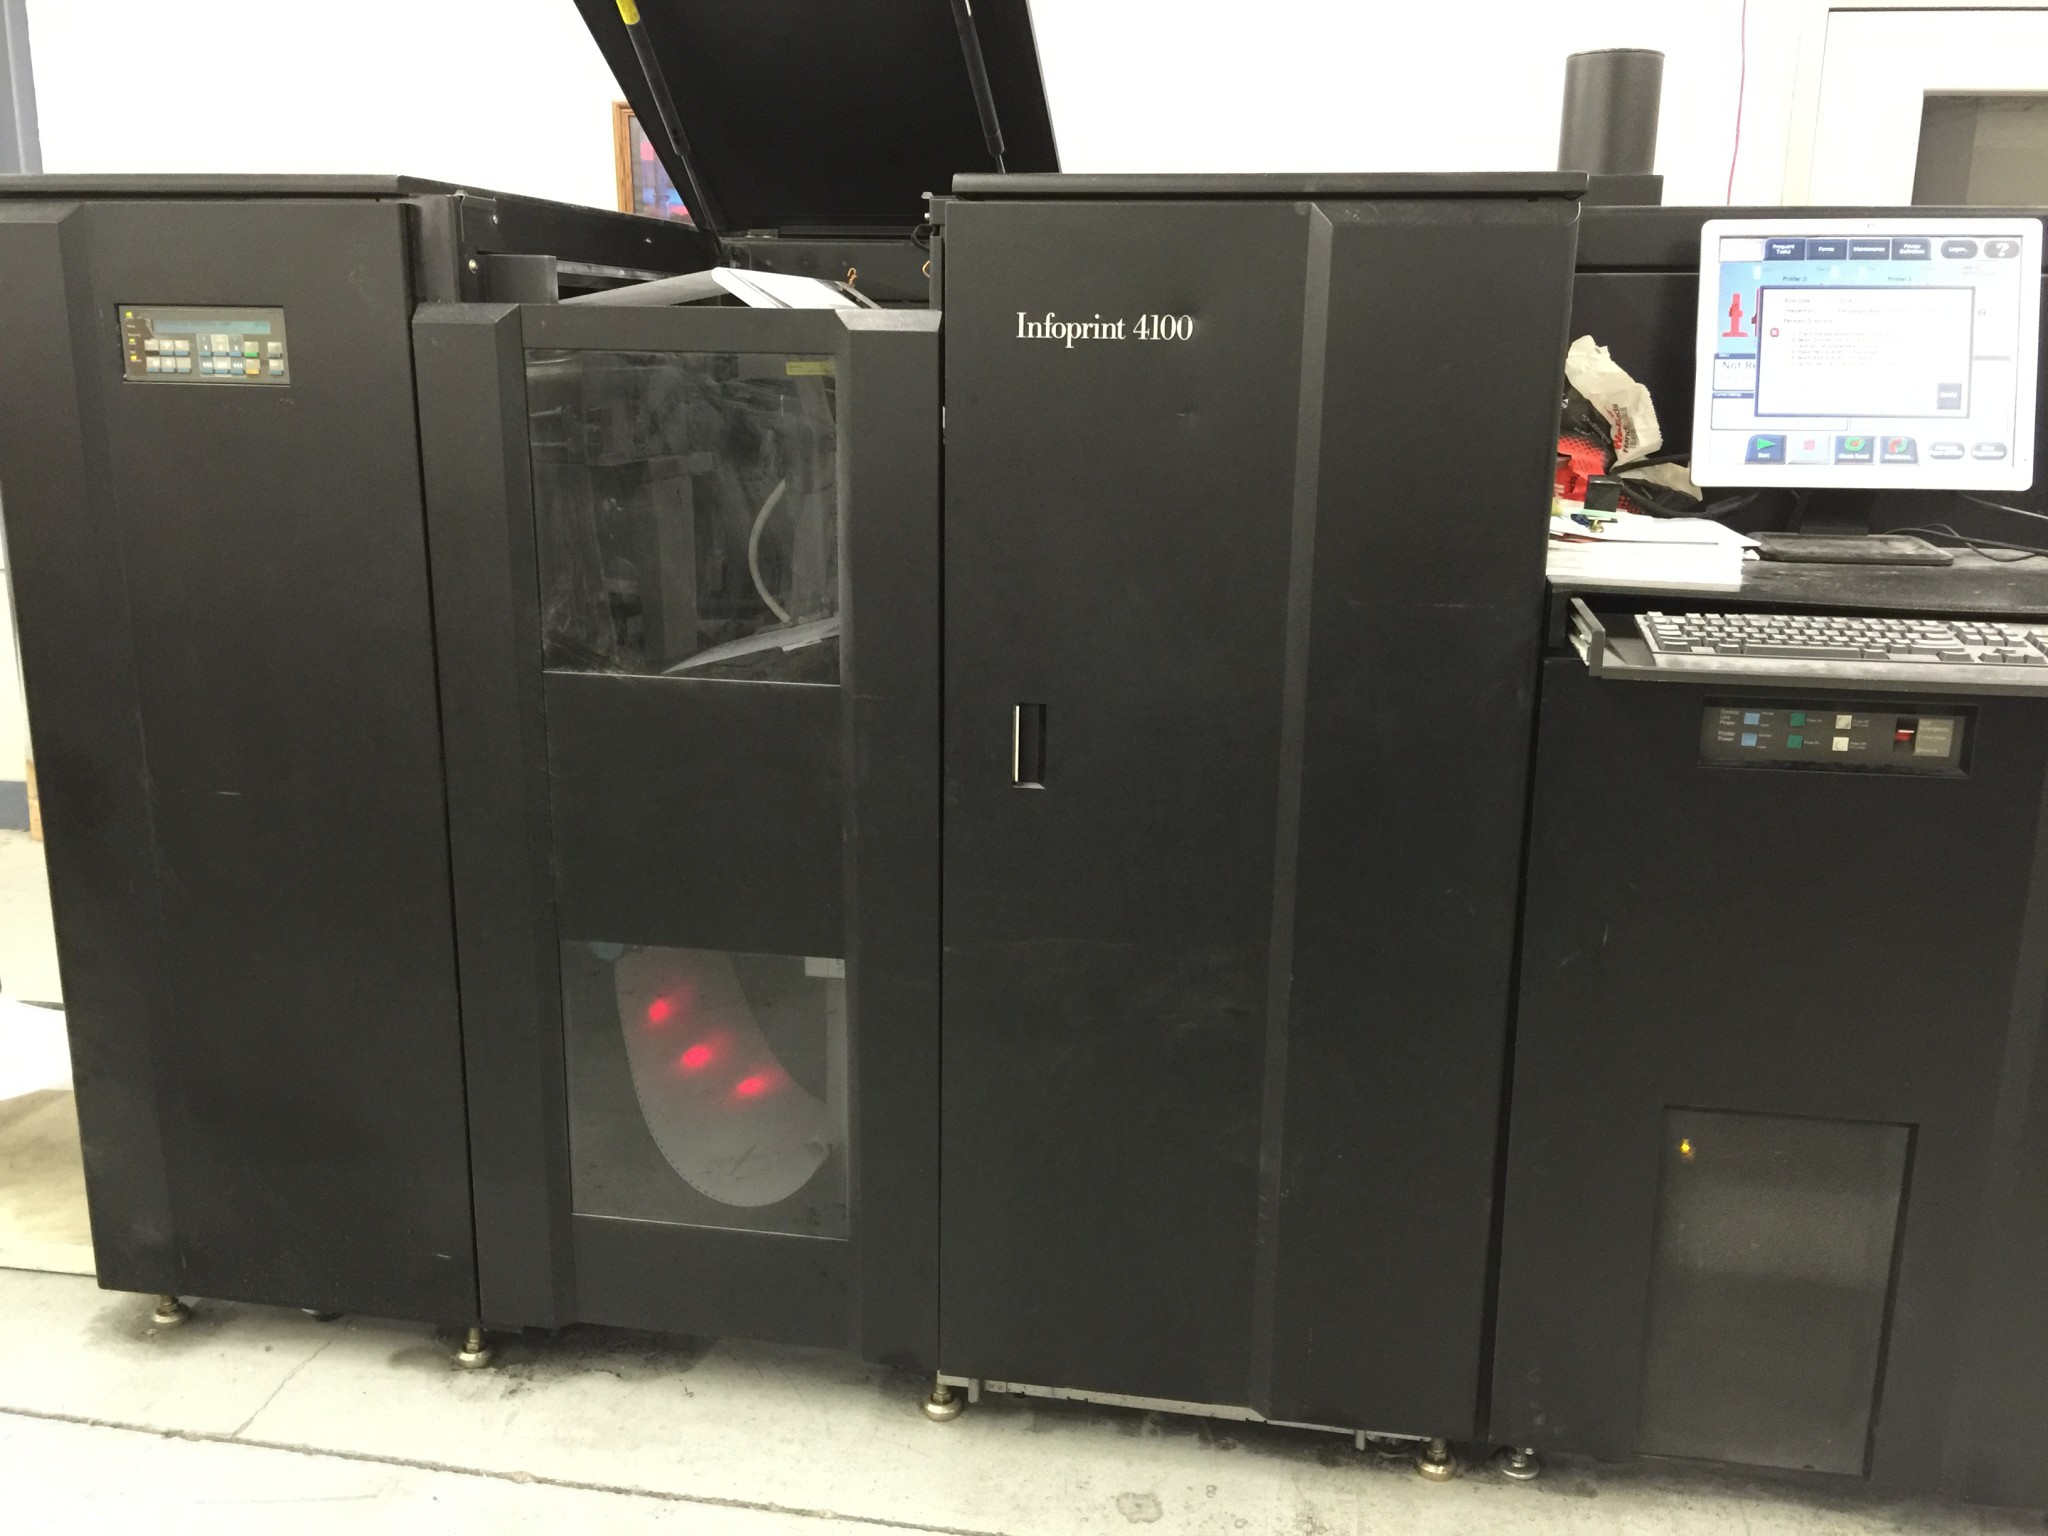 Ibm Ricoh Infoprint 4100 Hd1 Hd2 For Sale Pre Owned